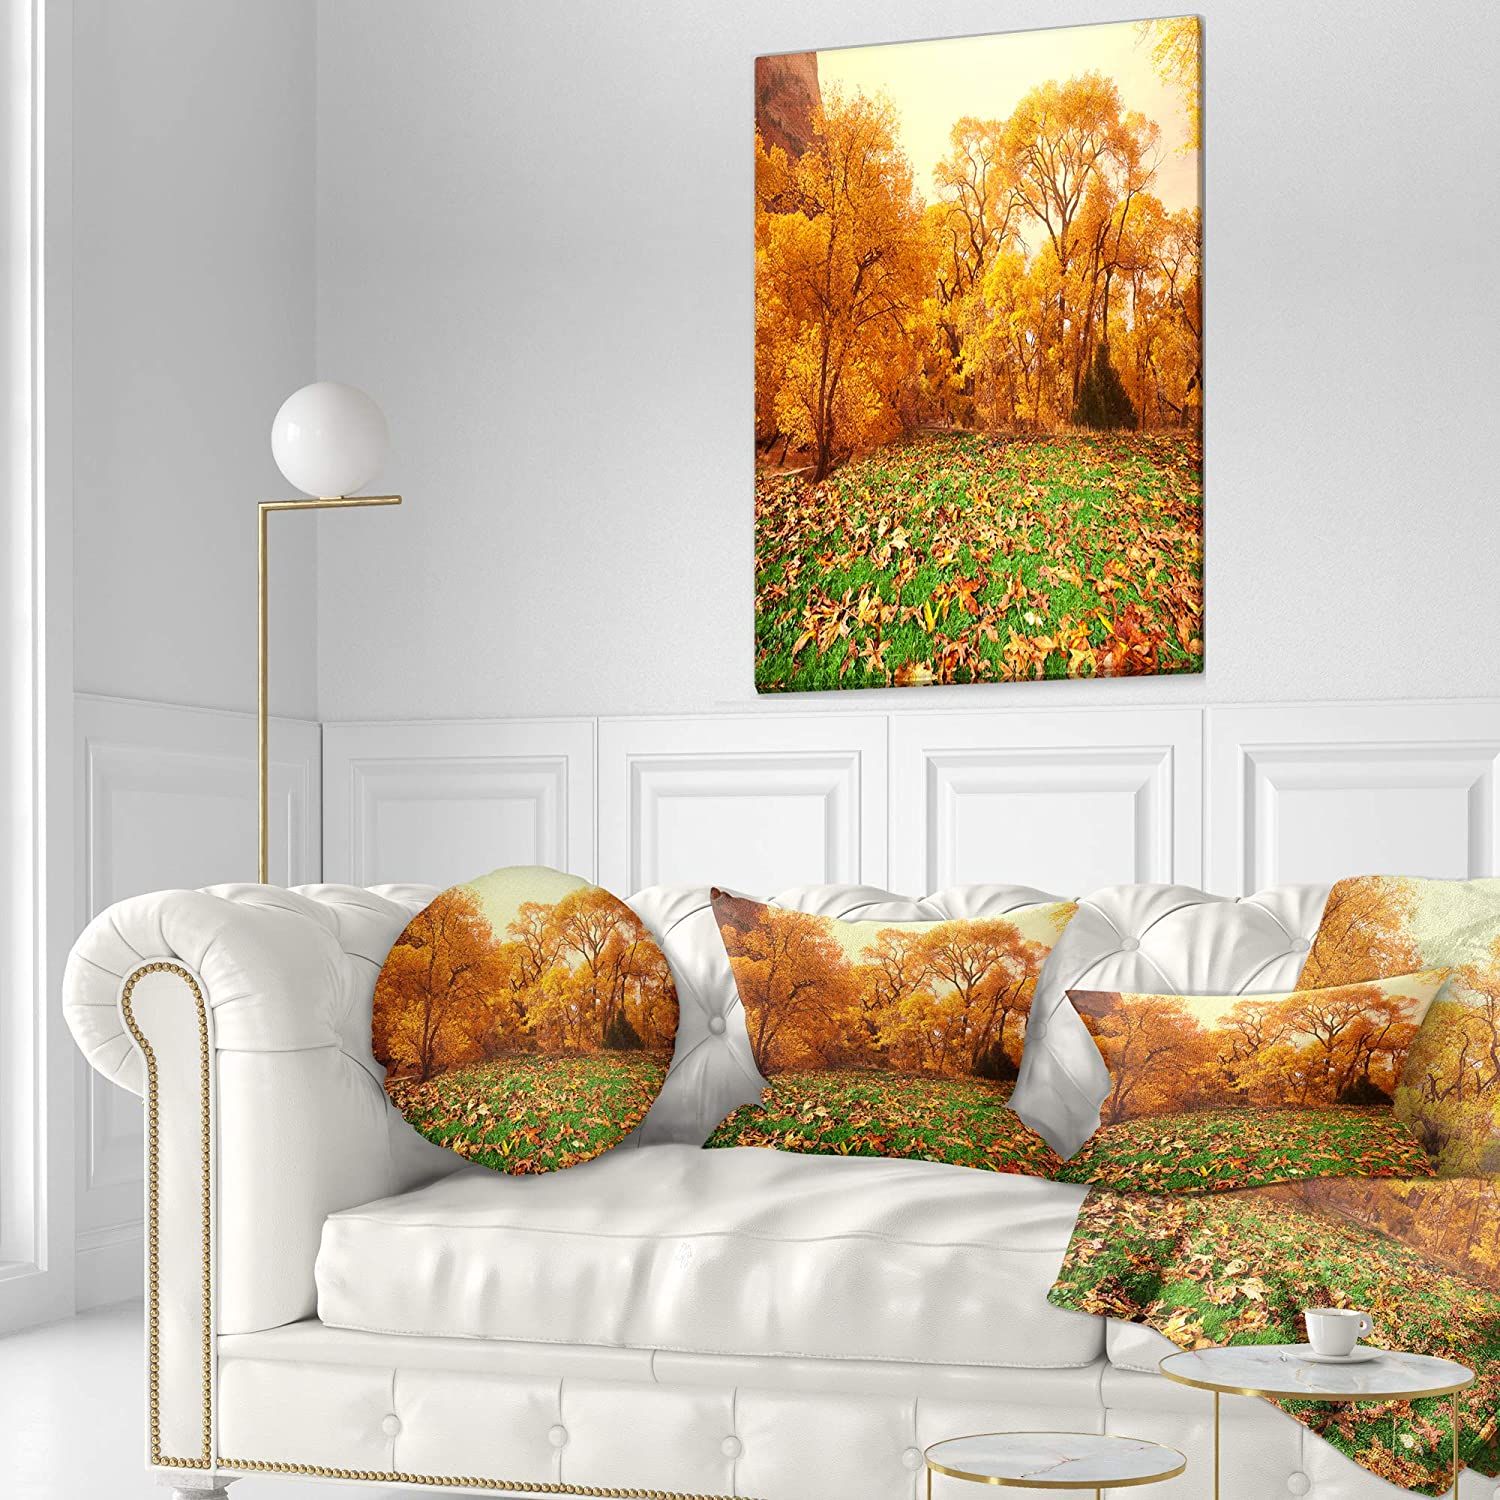 Designart CU12819-16-16-C Beautiful Autumn with Green Grass Landscape Printed Round Cushion Cover for Living Room Sofa Throw Pillow 16